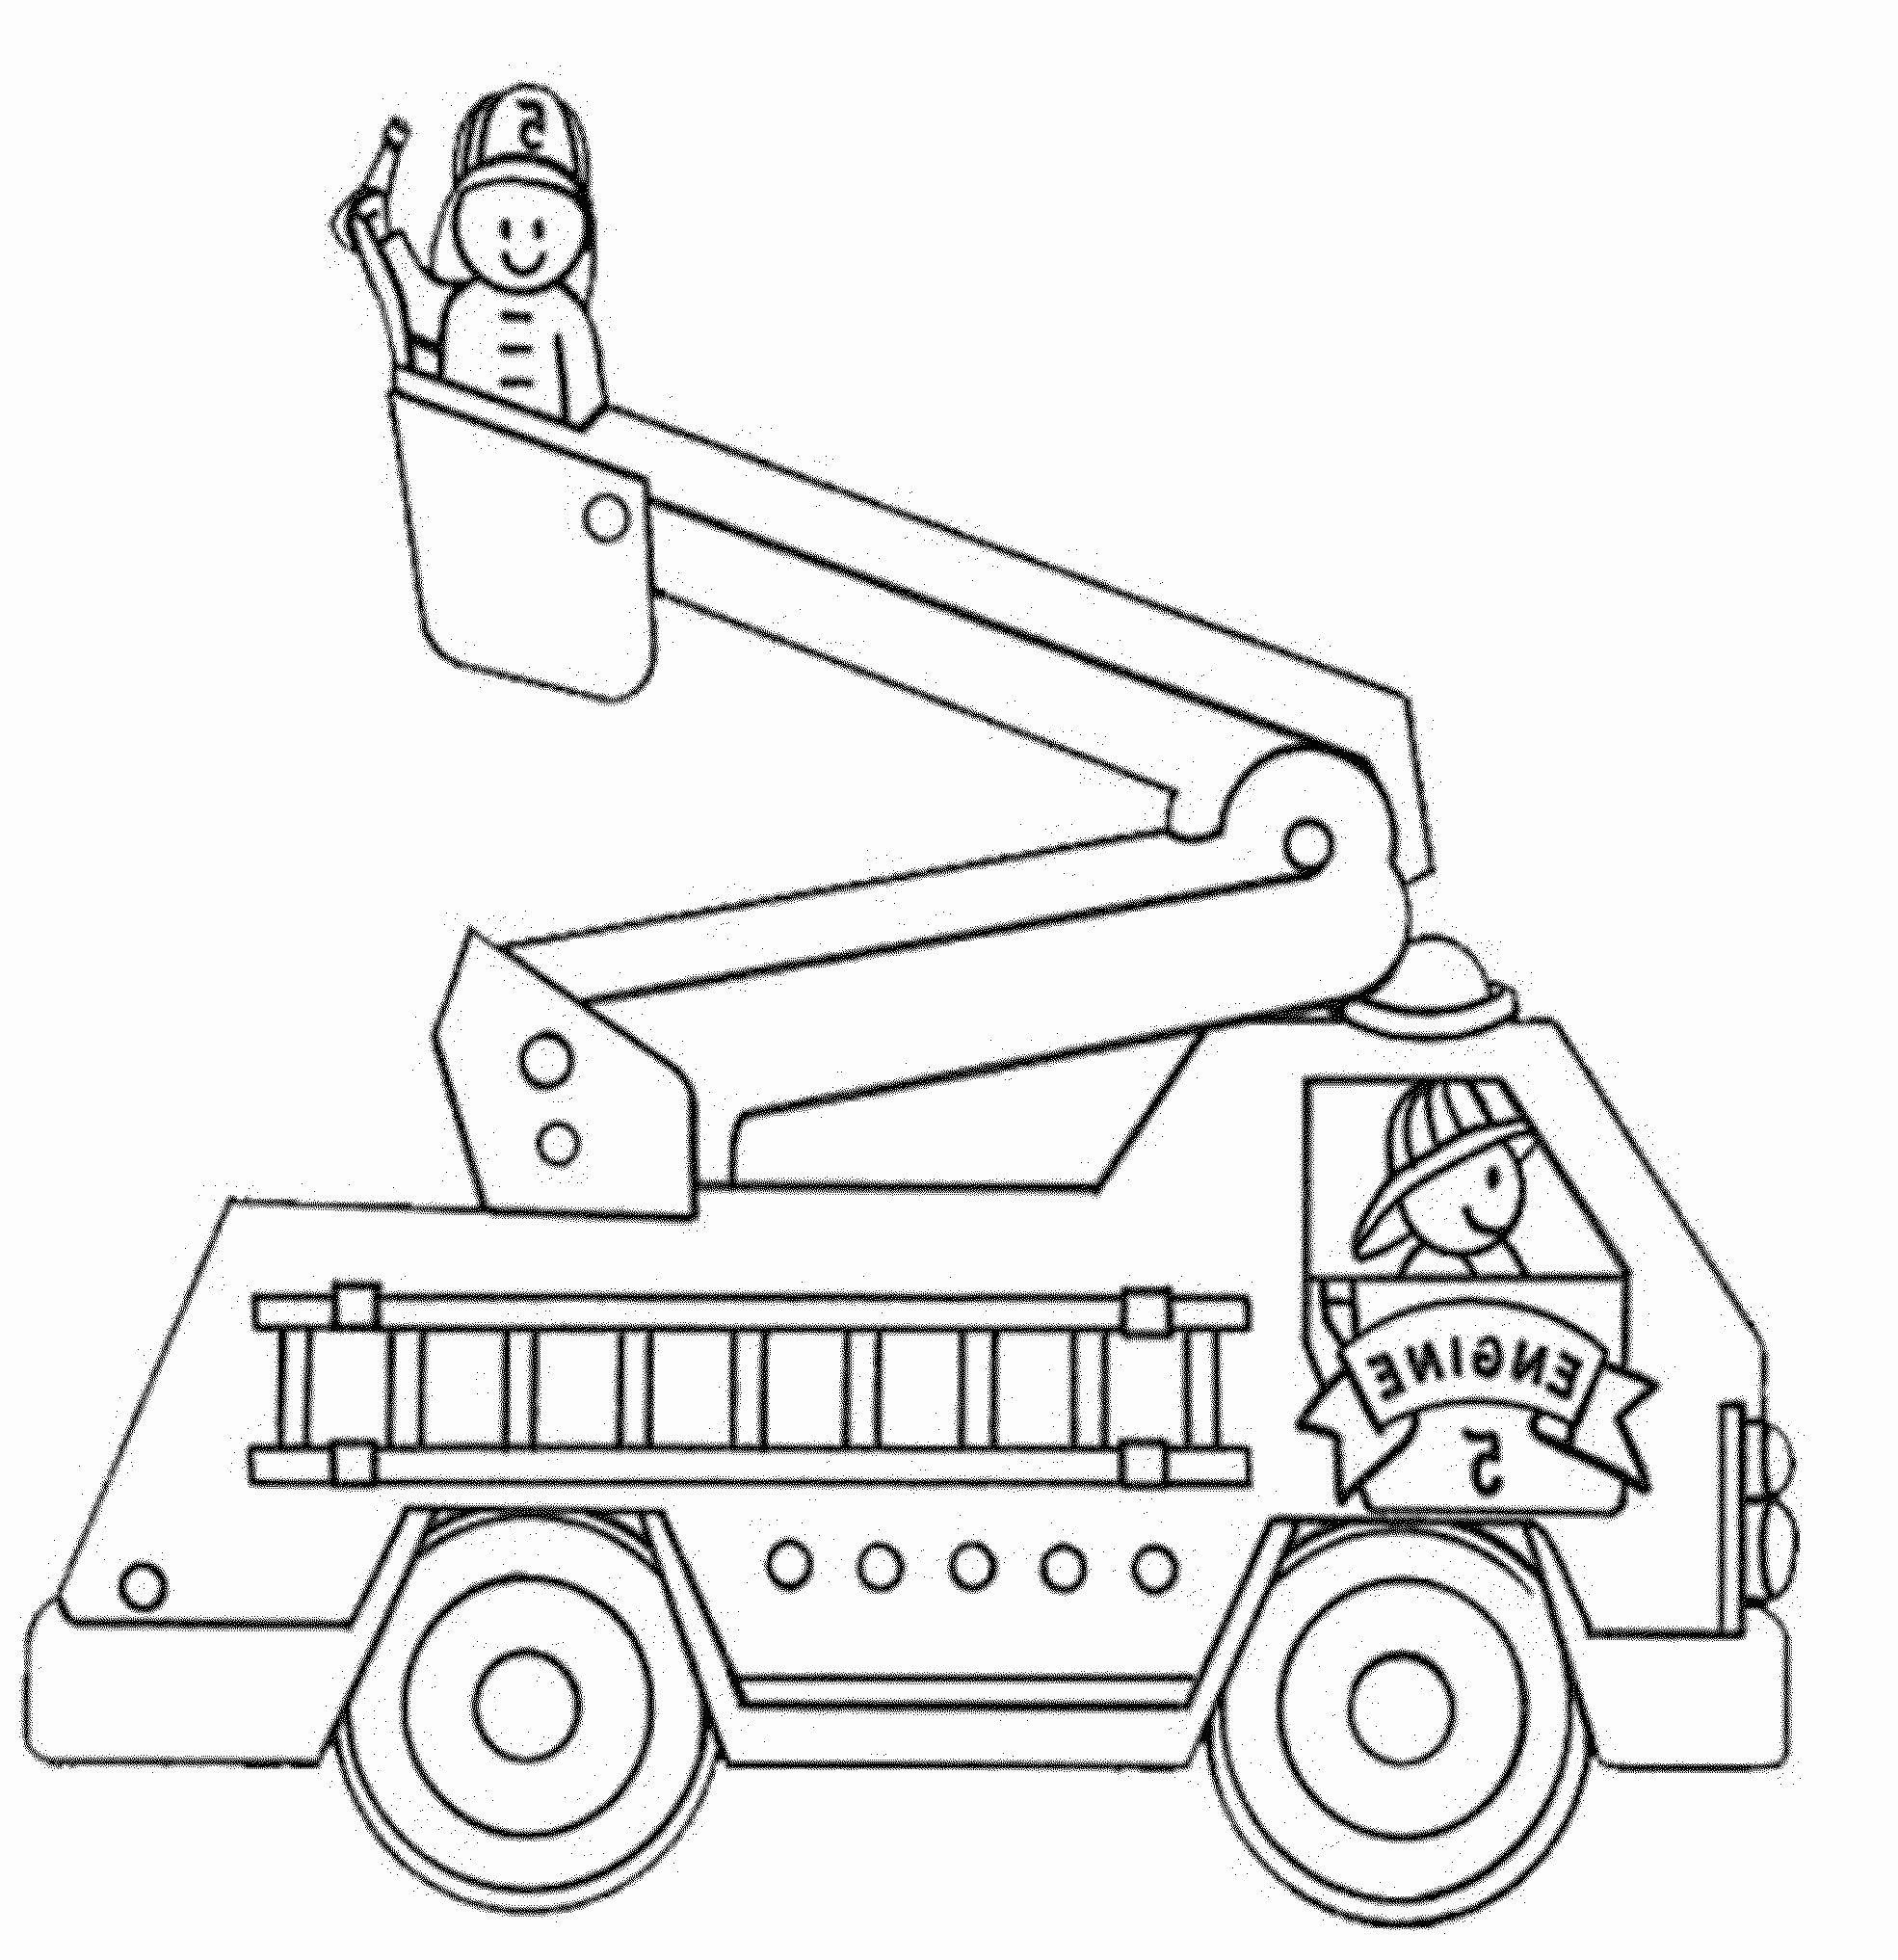 Fire Truck Coloring Page Lovely Print Download Educational Fire Truck Coloring Page In 2020 Firetruck Coloring Page Truck Coloring Pages Monster Truck Coloring Pages